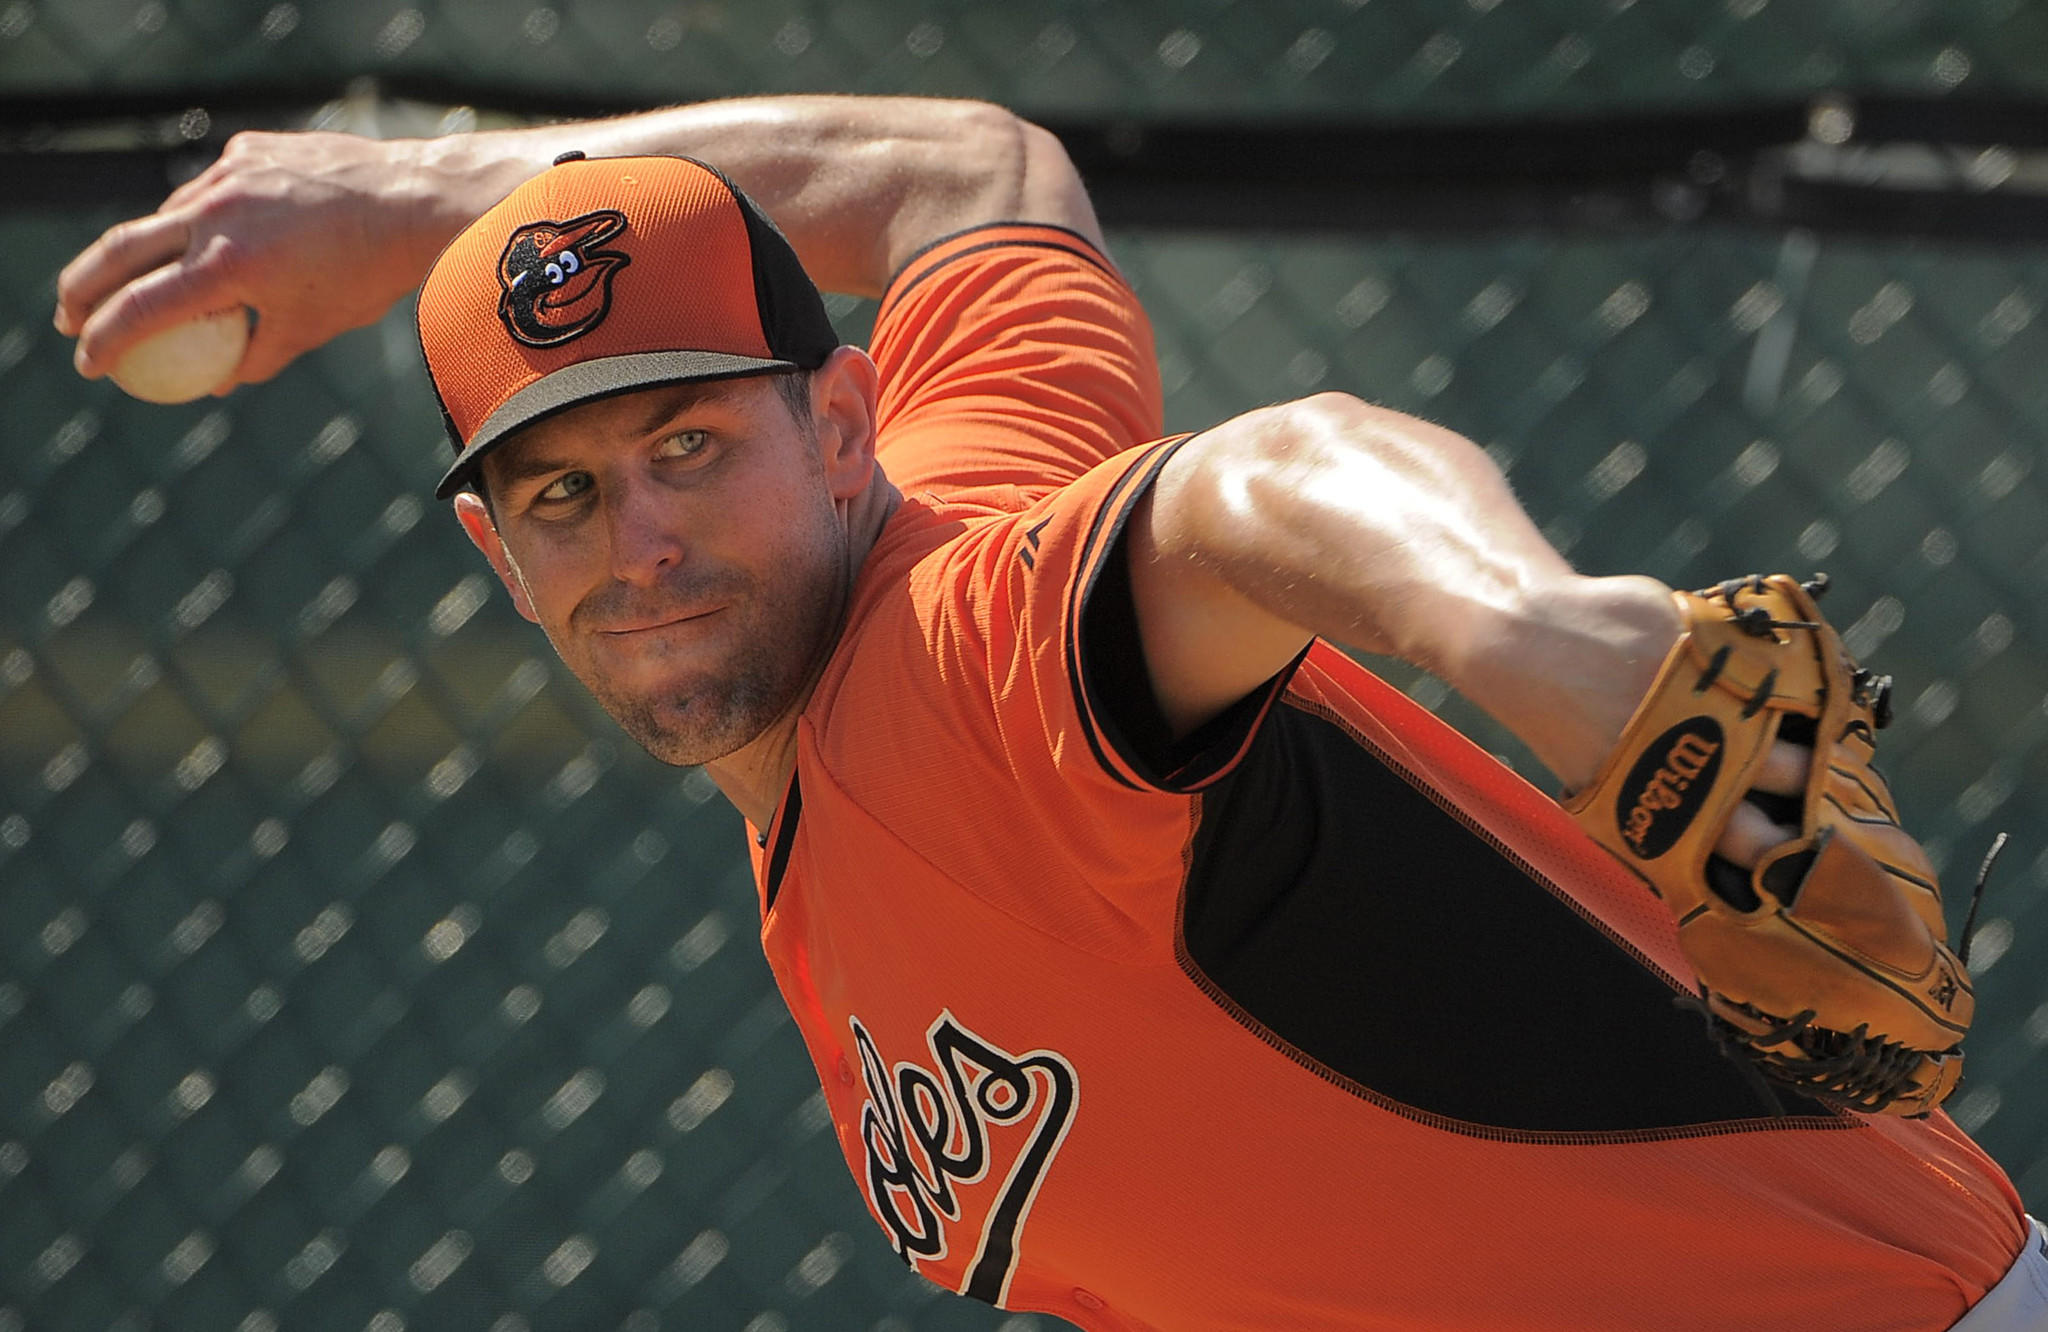 Orioles relief pitcher Darren O'Day winds to throw, warming up during workouts at the Orioles' spring training facility.